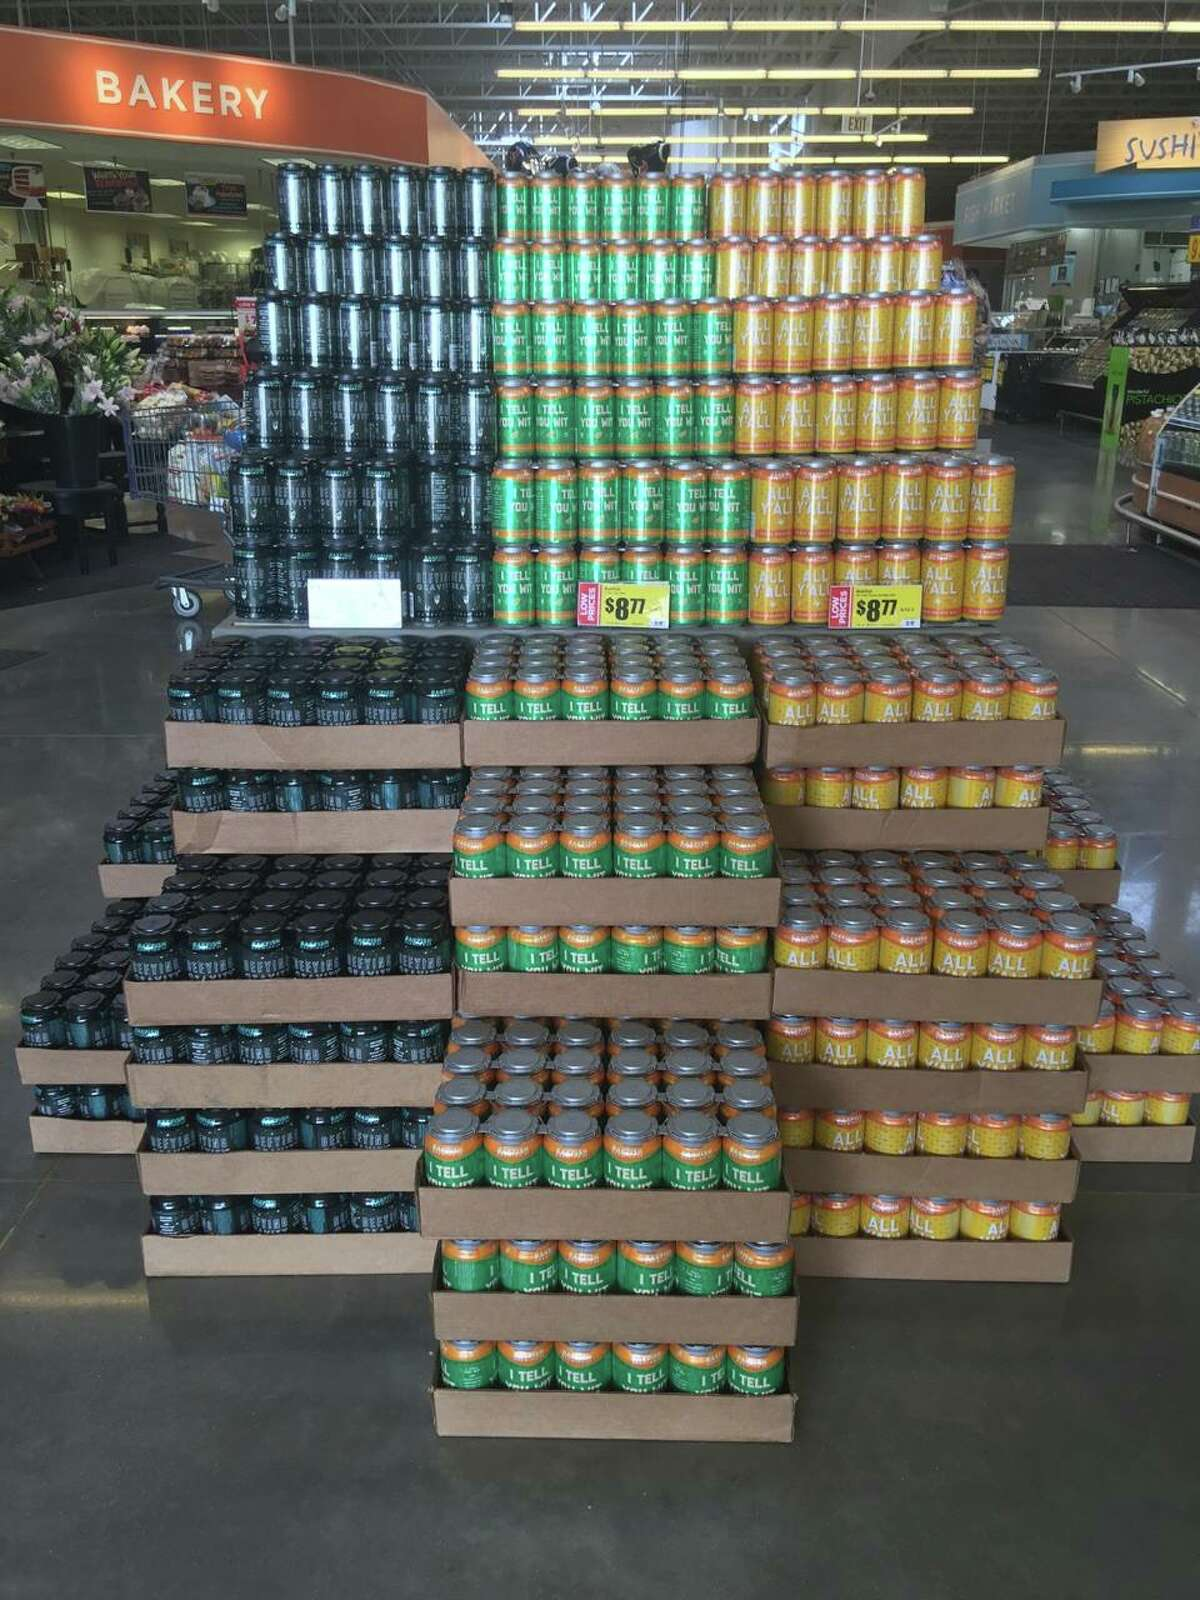 Bakfish Brewing cans hit the shelves at the Pearland Parkway HEB store on Jan. 12, 2017.